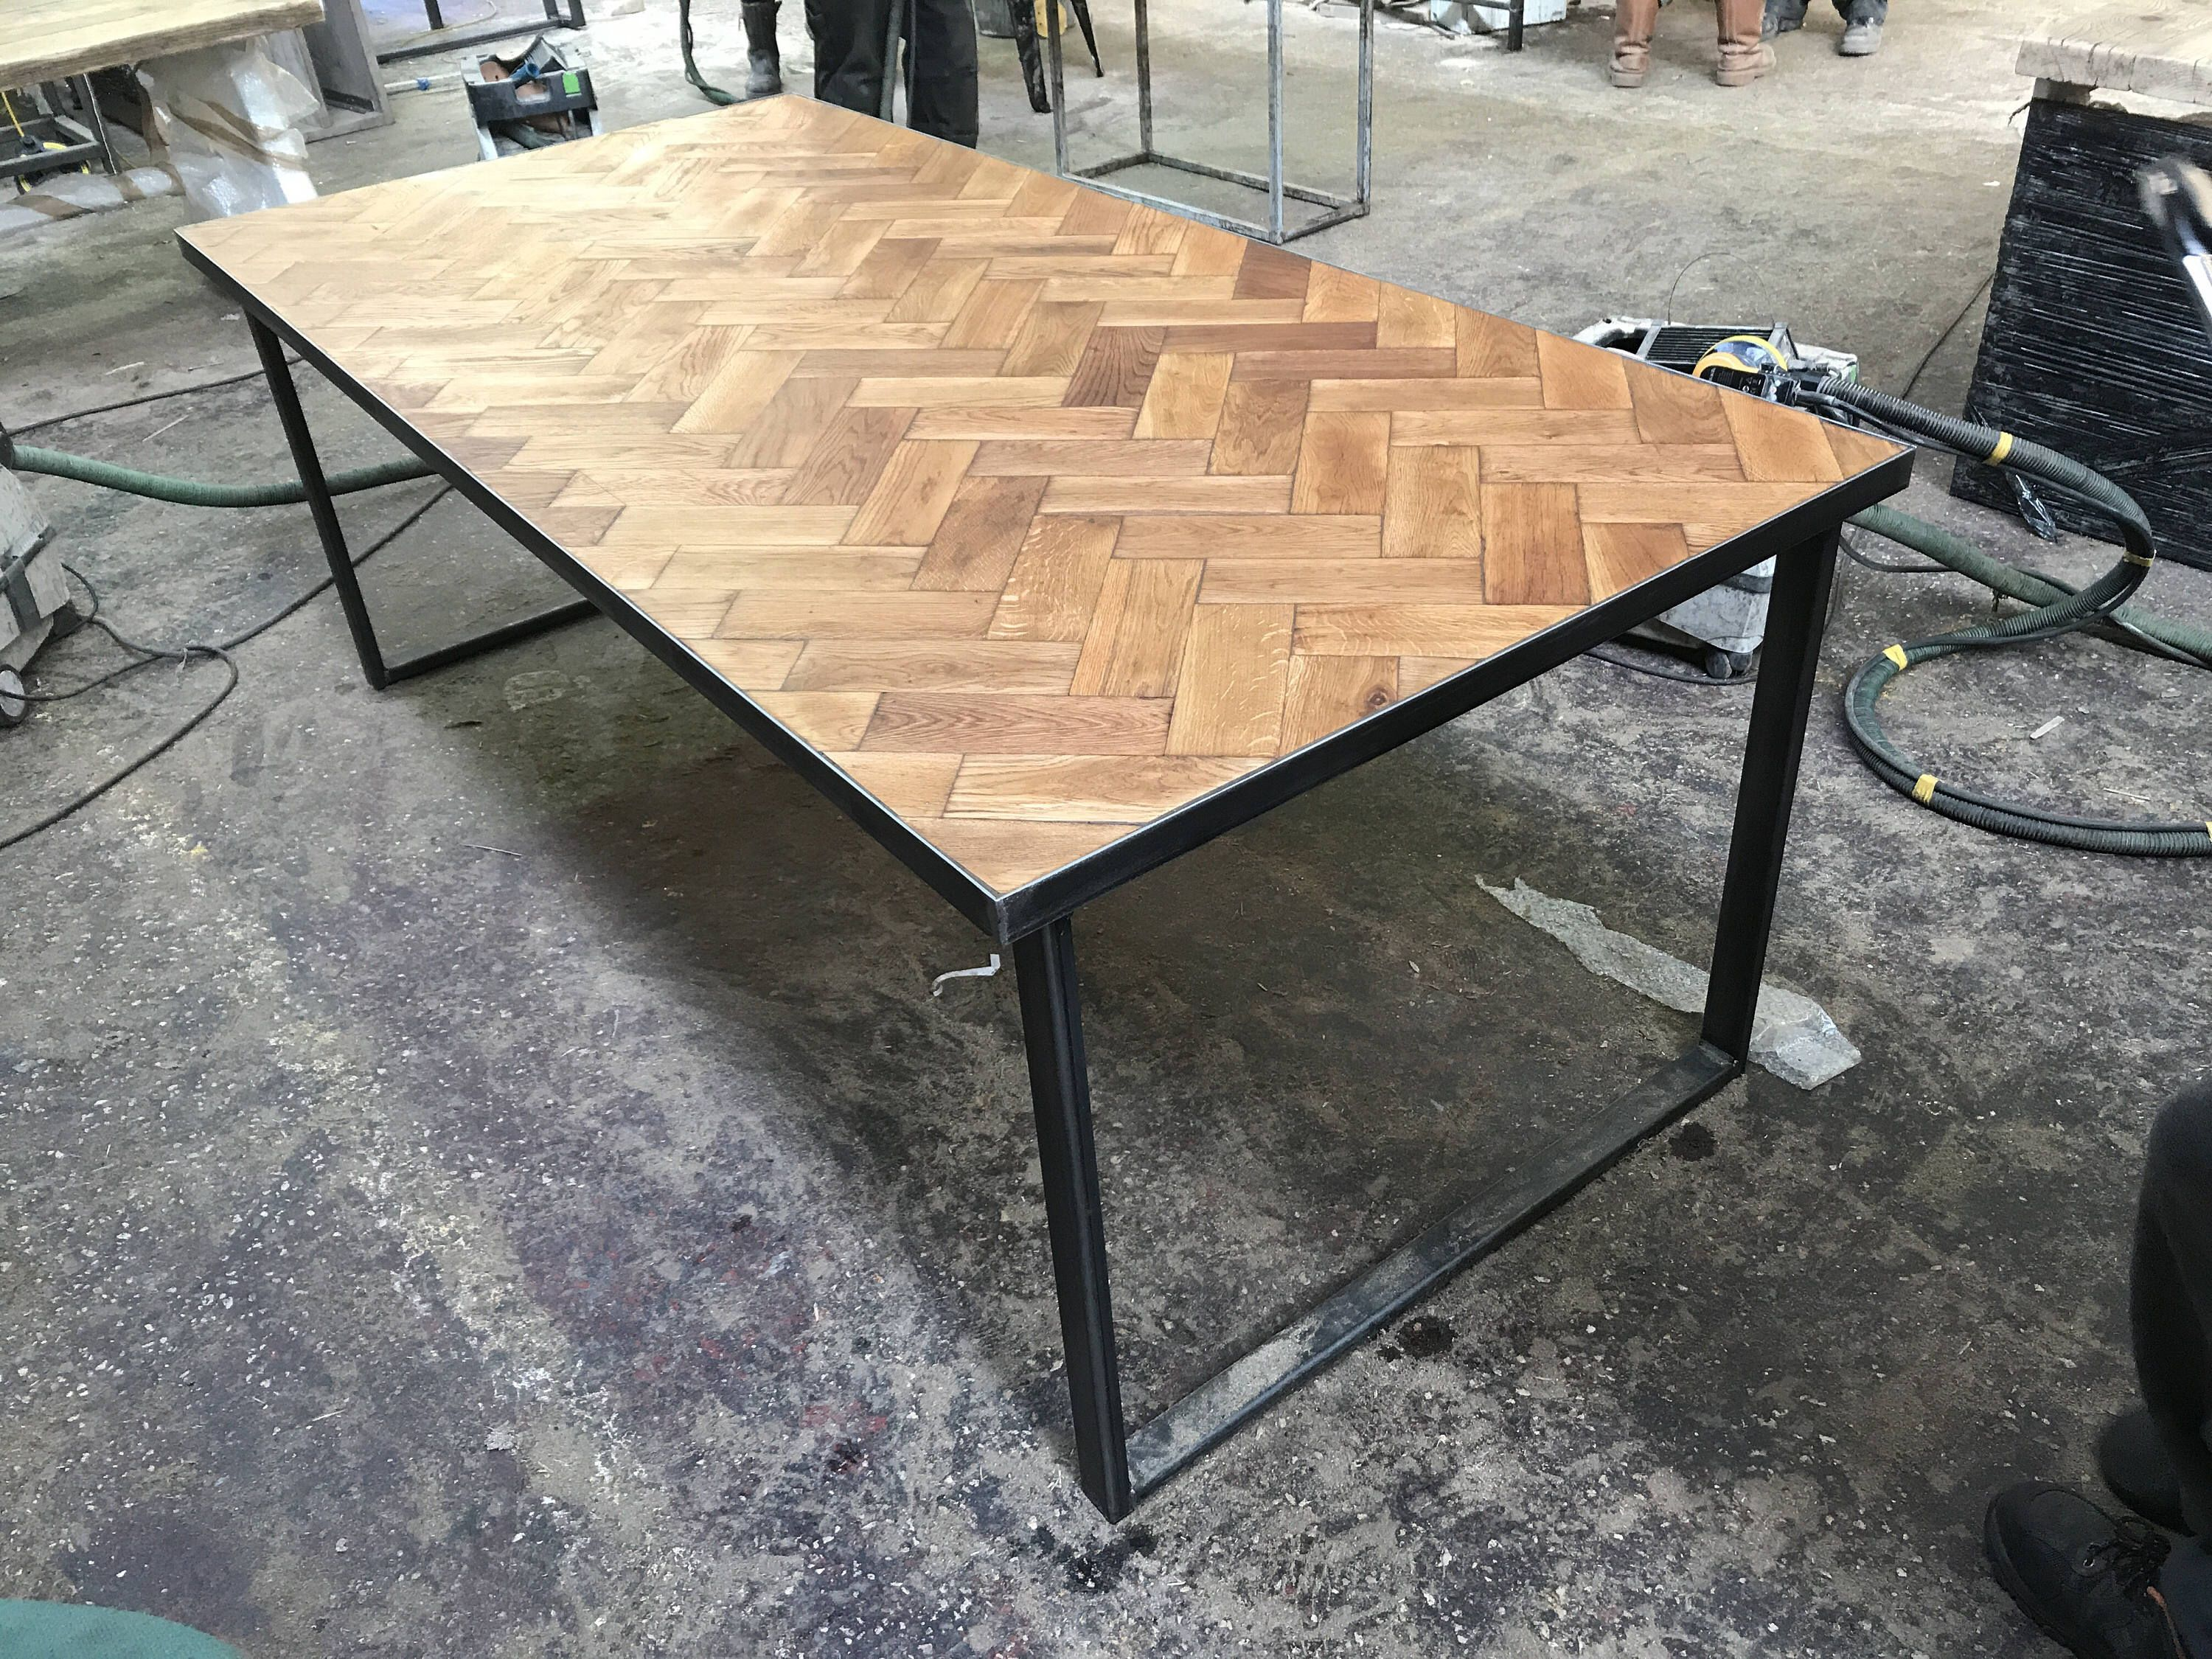 83100286106 Reclaimed Solid Oak Parquet Industrial Chic 6-8 Seater Solid Wood  amp   Steel Dining